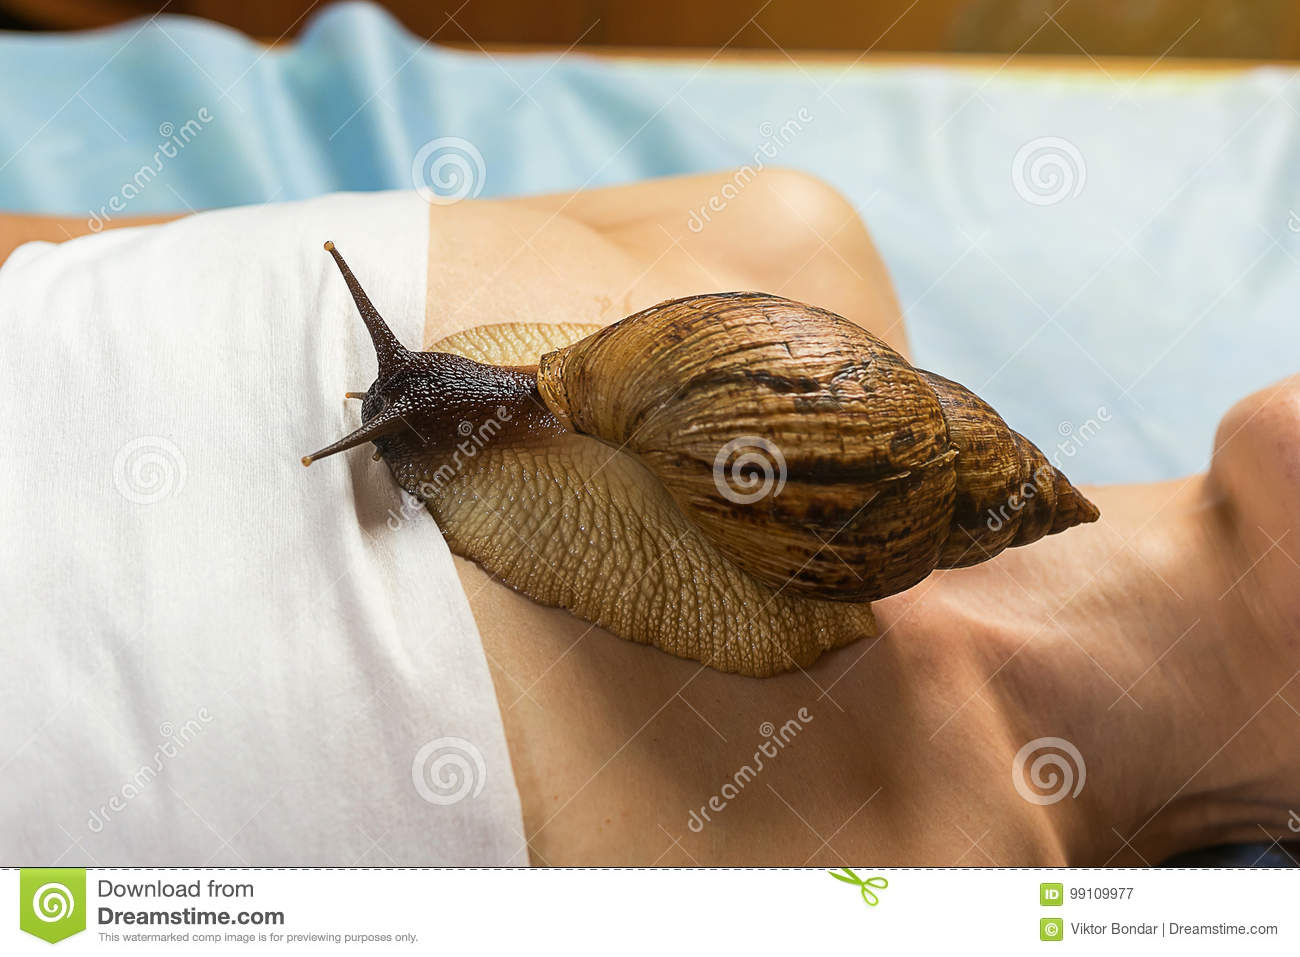 Achatina snails in cosmetology: how to use 26